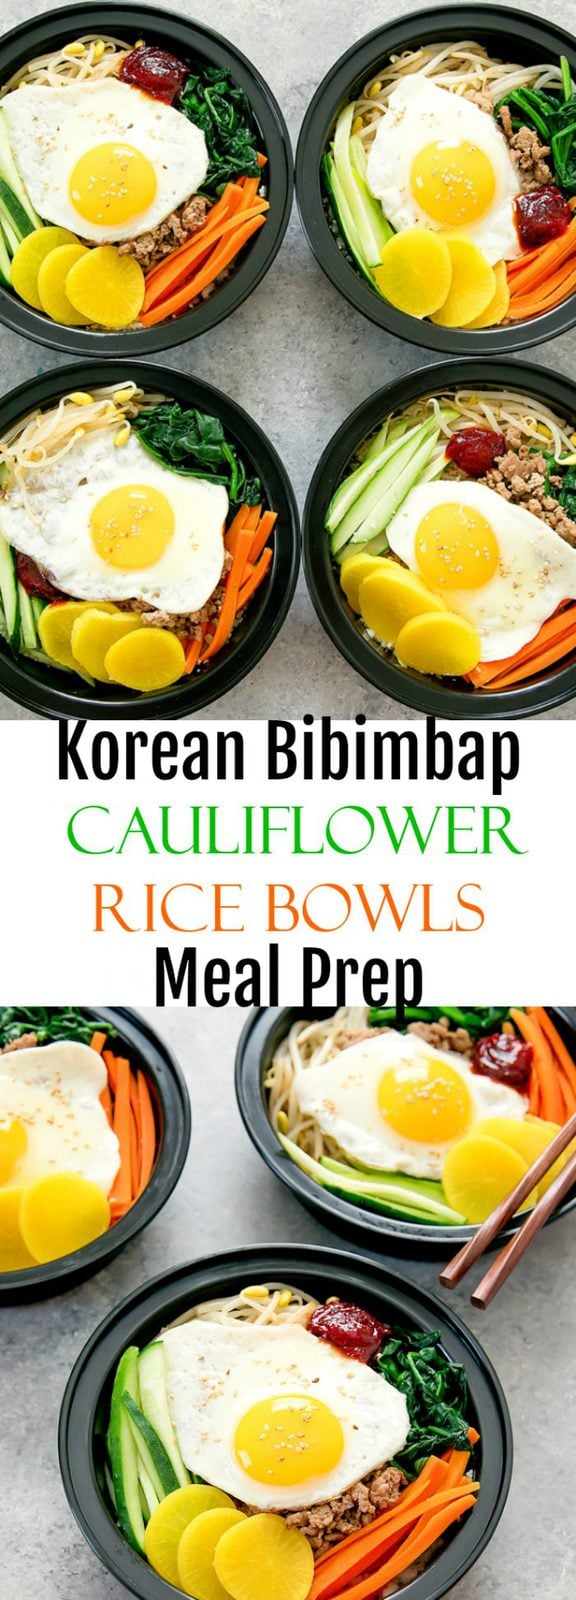 Korean Cauliflower Rice Bowls Meal Prep